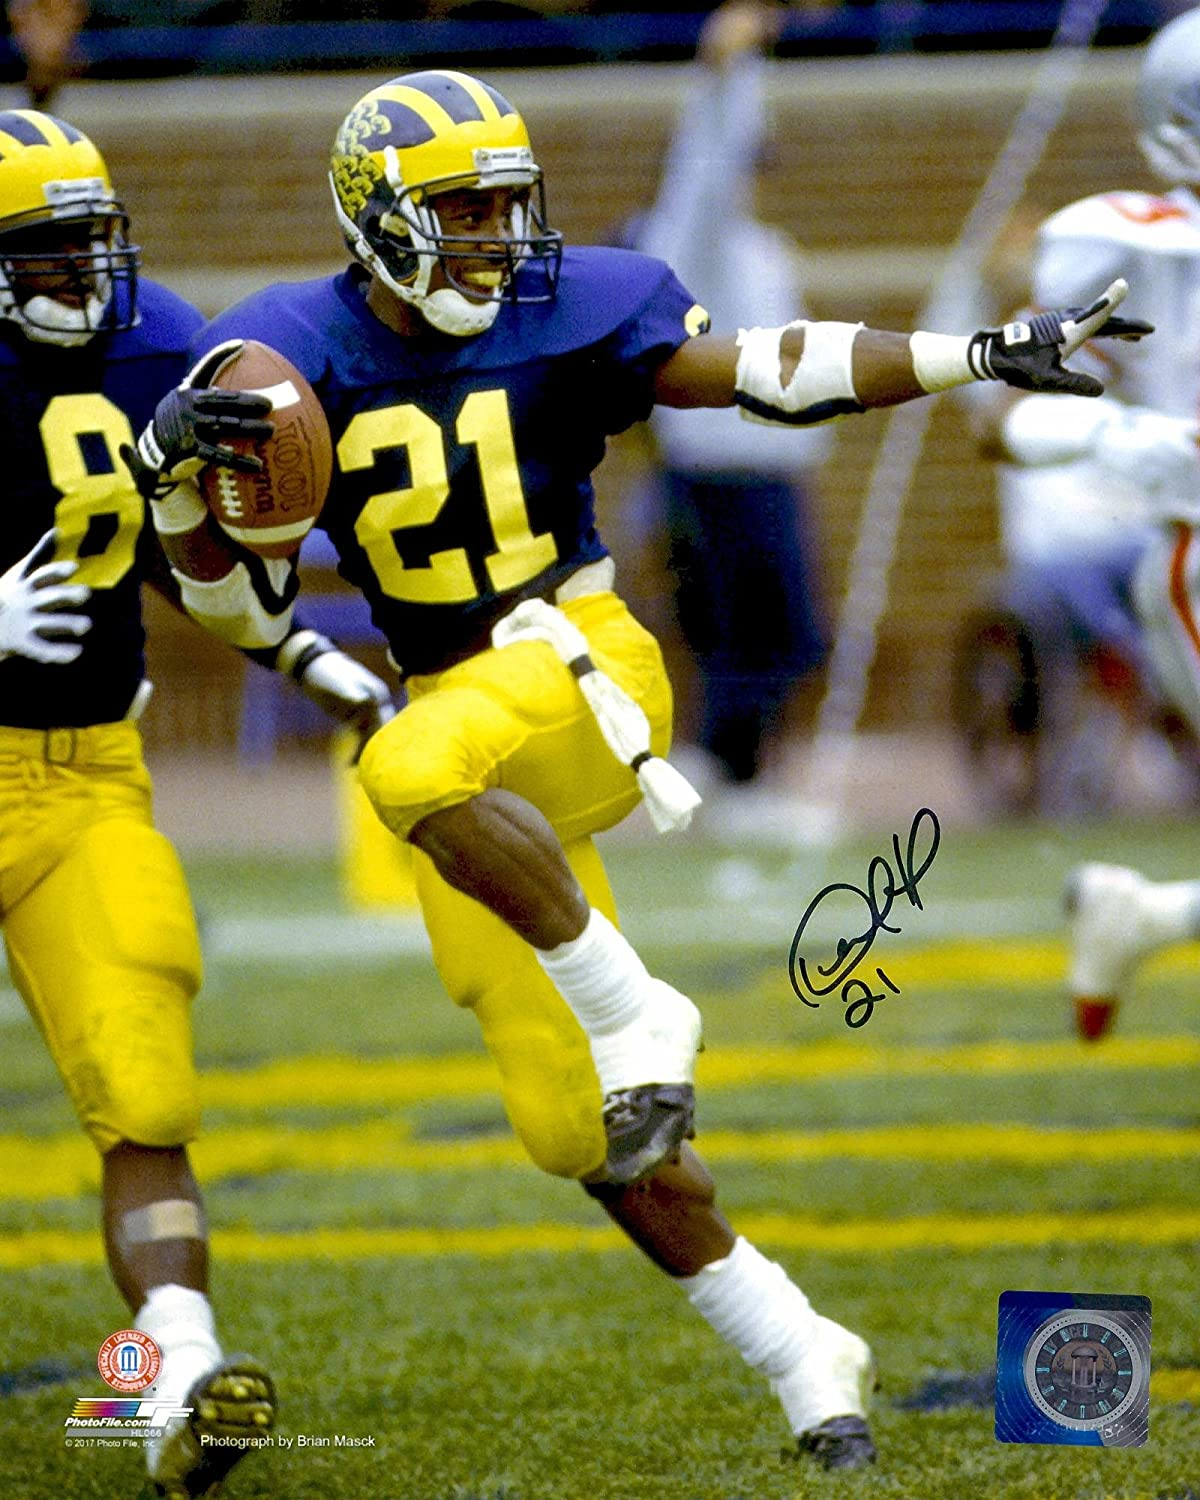 Desmond Howard Michigan Wolverines Autographed 8' x 10' Heisman Pose Photograph - Fanatics Authentic Certified